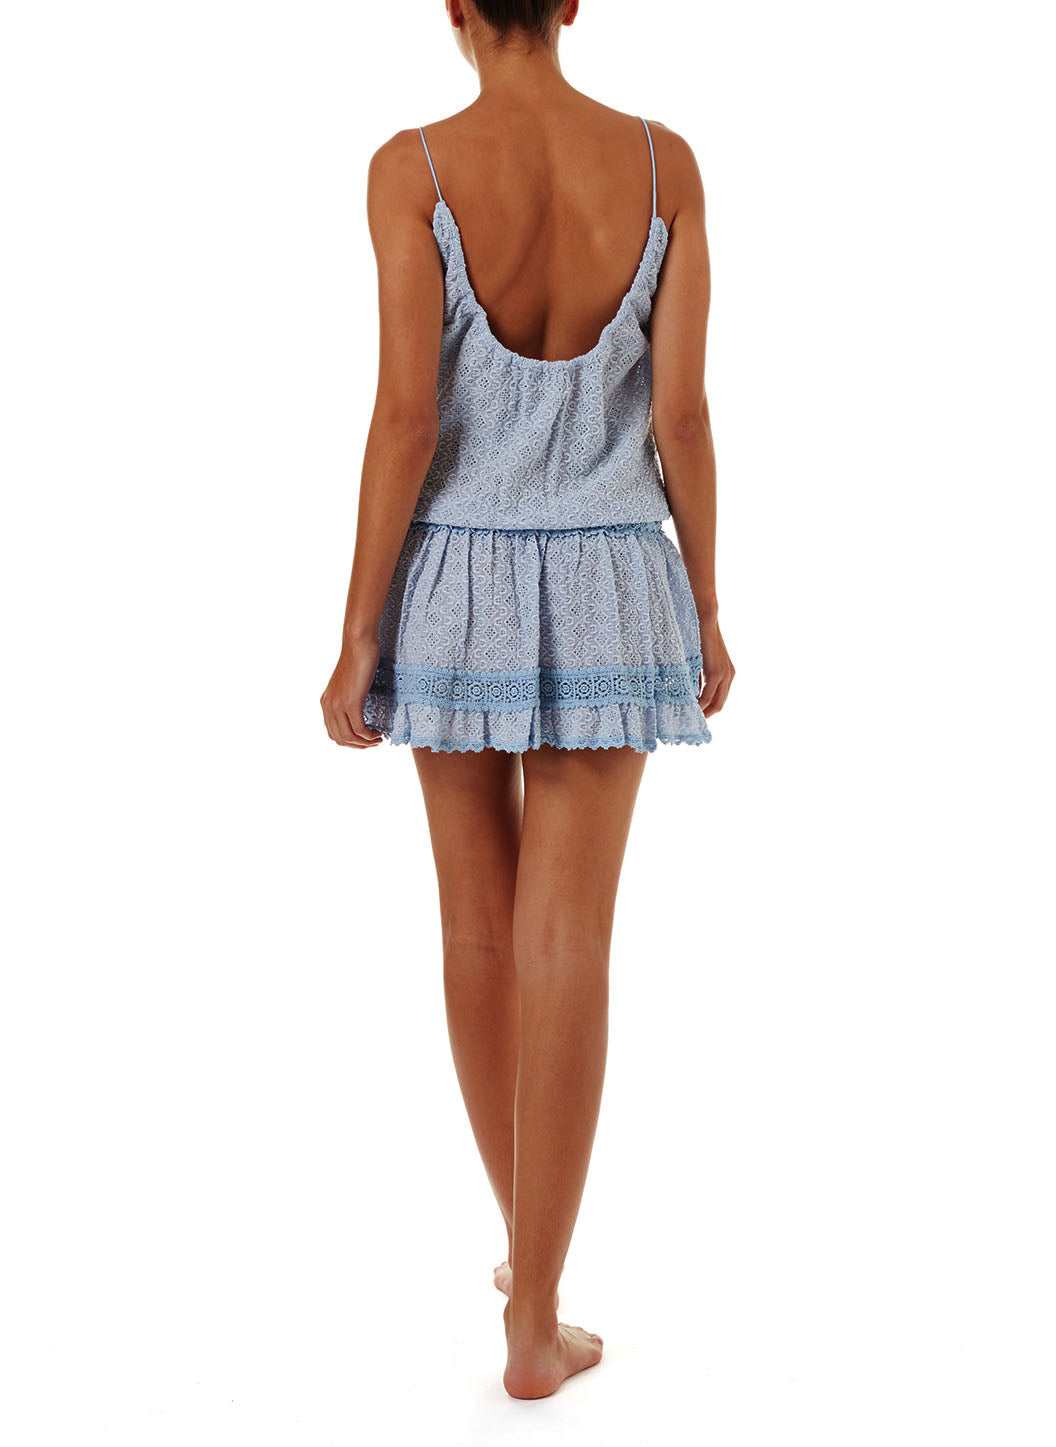 Chelsea Blue Open Back Short Beach Dress